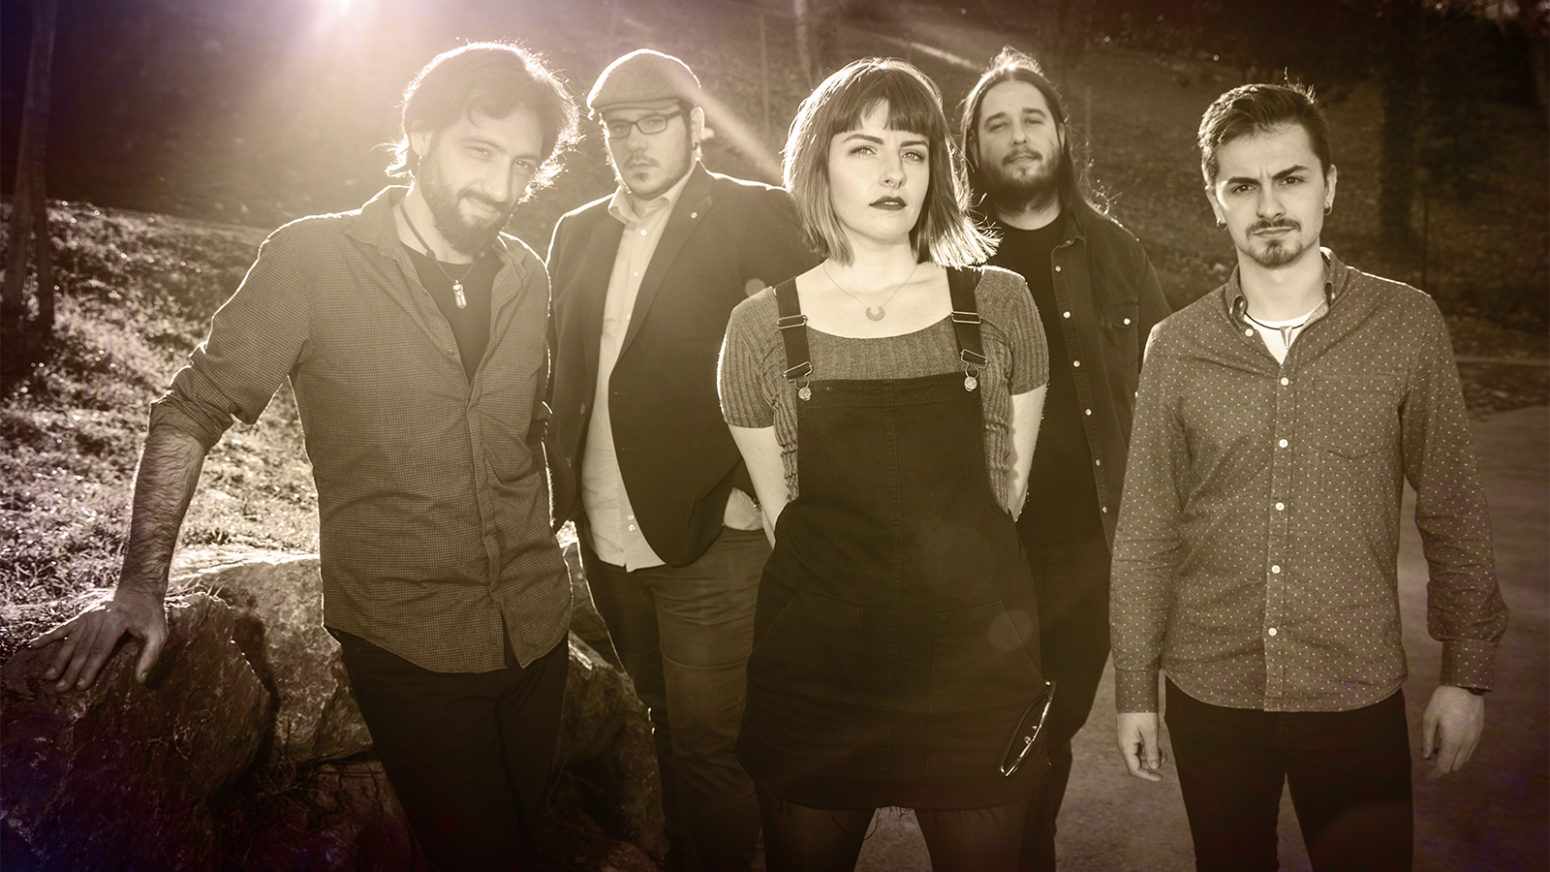 Noticias: Mississippi Queen & The Wet Dog - Welcome Home - vídeo